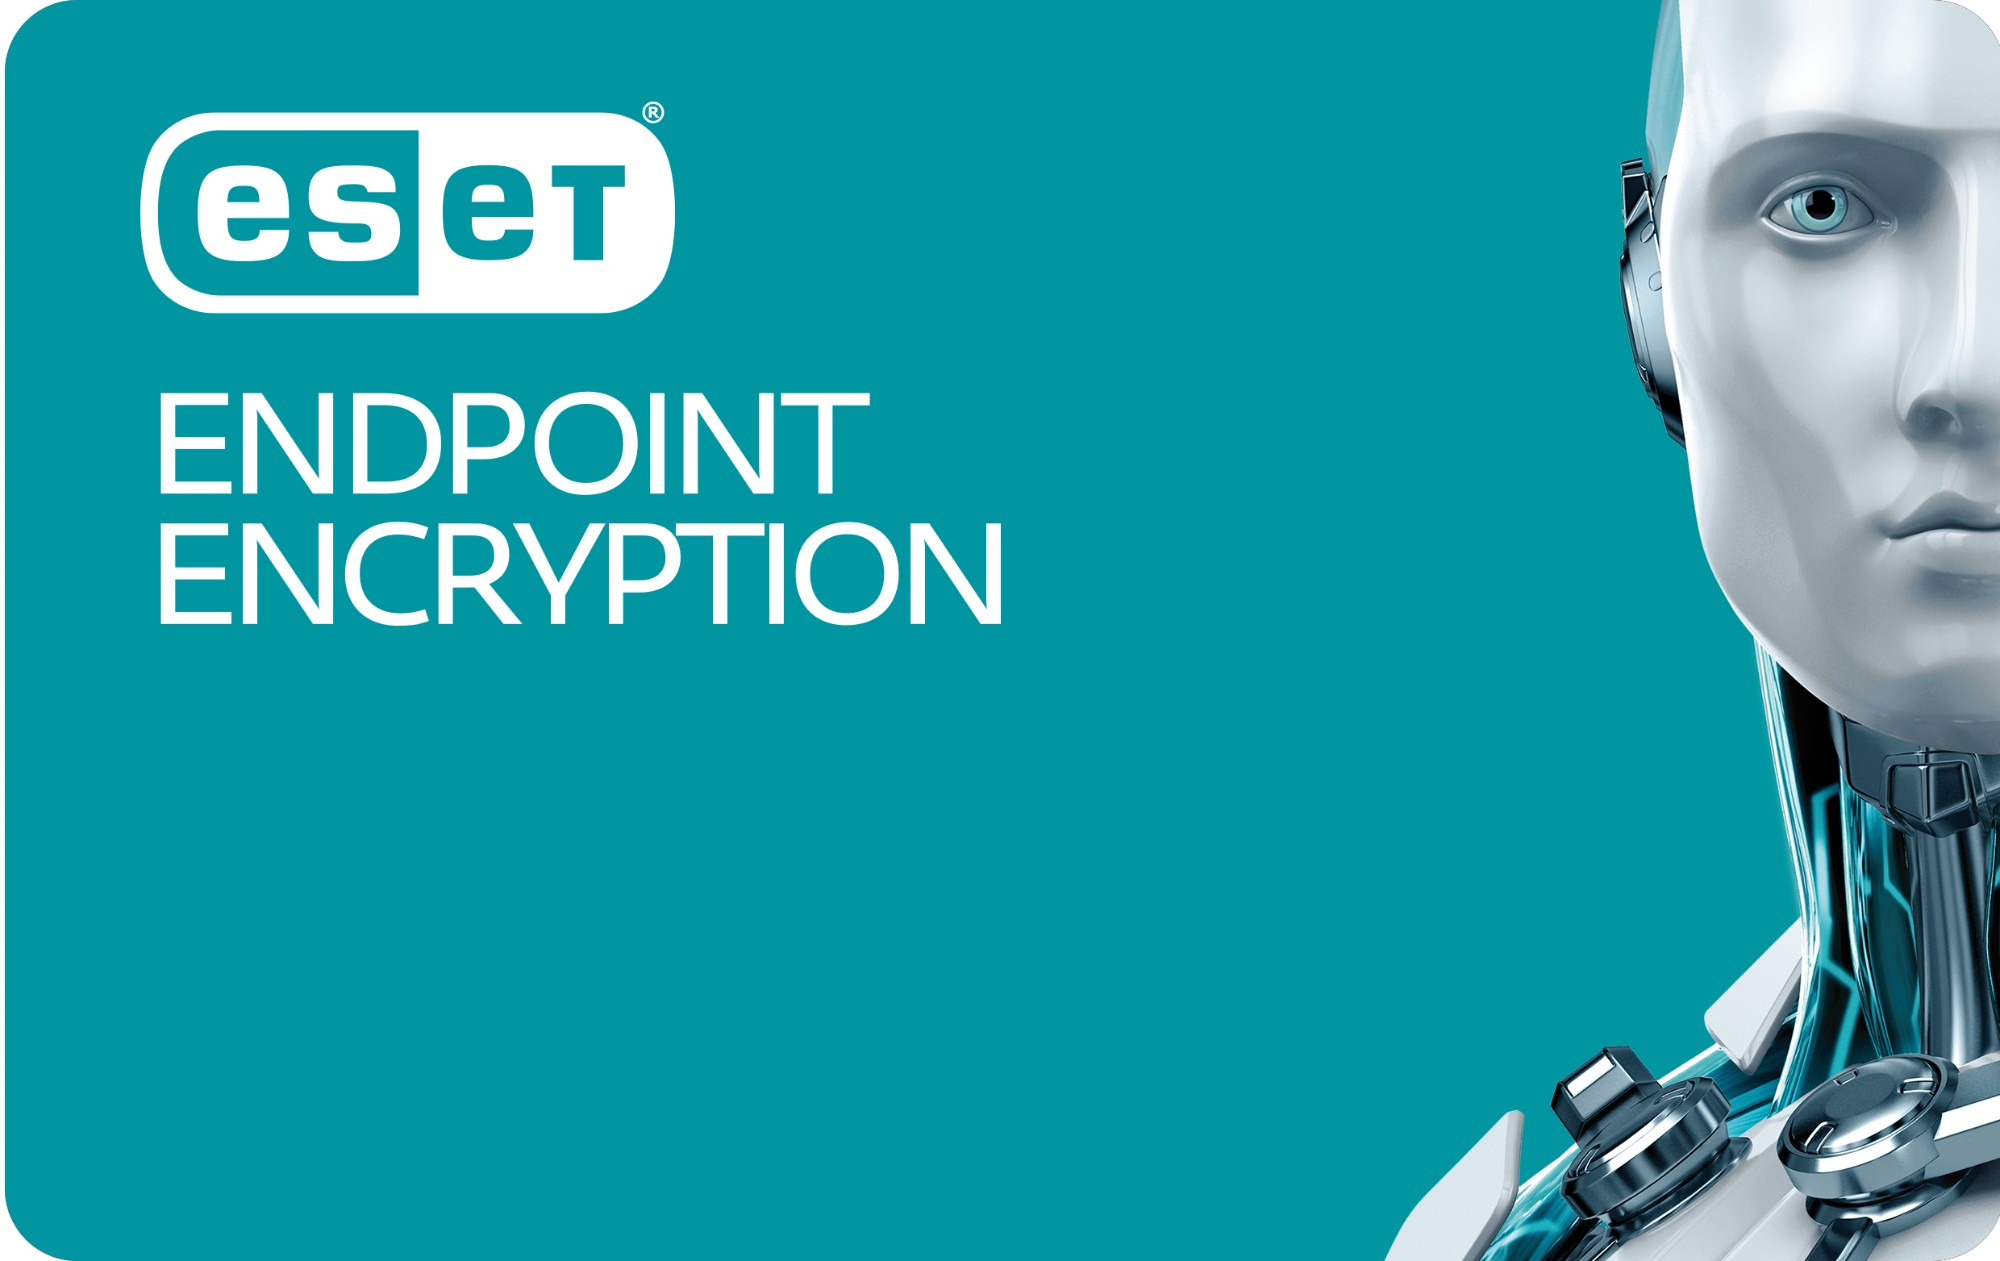 ESET Endpoint Encryption Pro 2000 - 4999 User Government (GOV) license 2000 - 4999 license(s) 1 year(s)